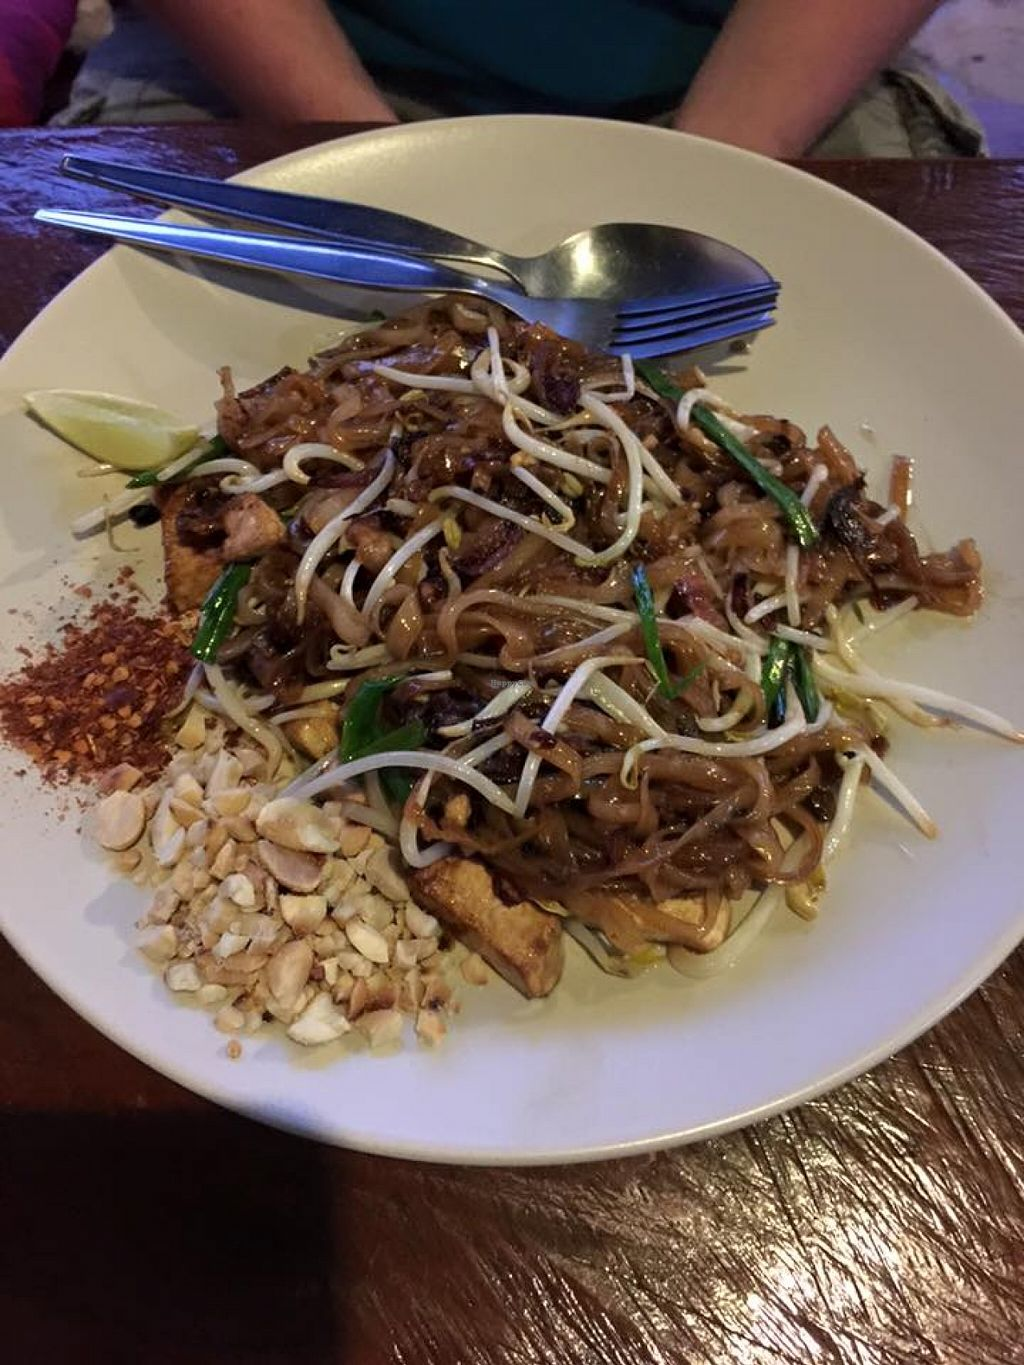 """Photo of CLOSED: Mayomwhan Nat's Kitchen  by <a href=""""/members/profile/Rocker"""">Rocker</a> <br/>best pad thai that I ate on my entire trip to Thailand <br/> November 19, 2015  - <a href='/contact/abuse/image/65791/125511'>Report</a>"""